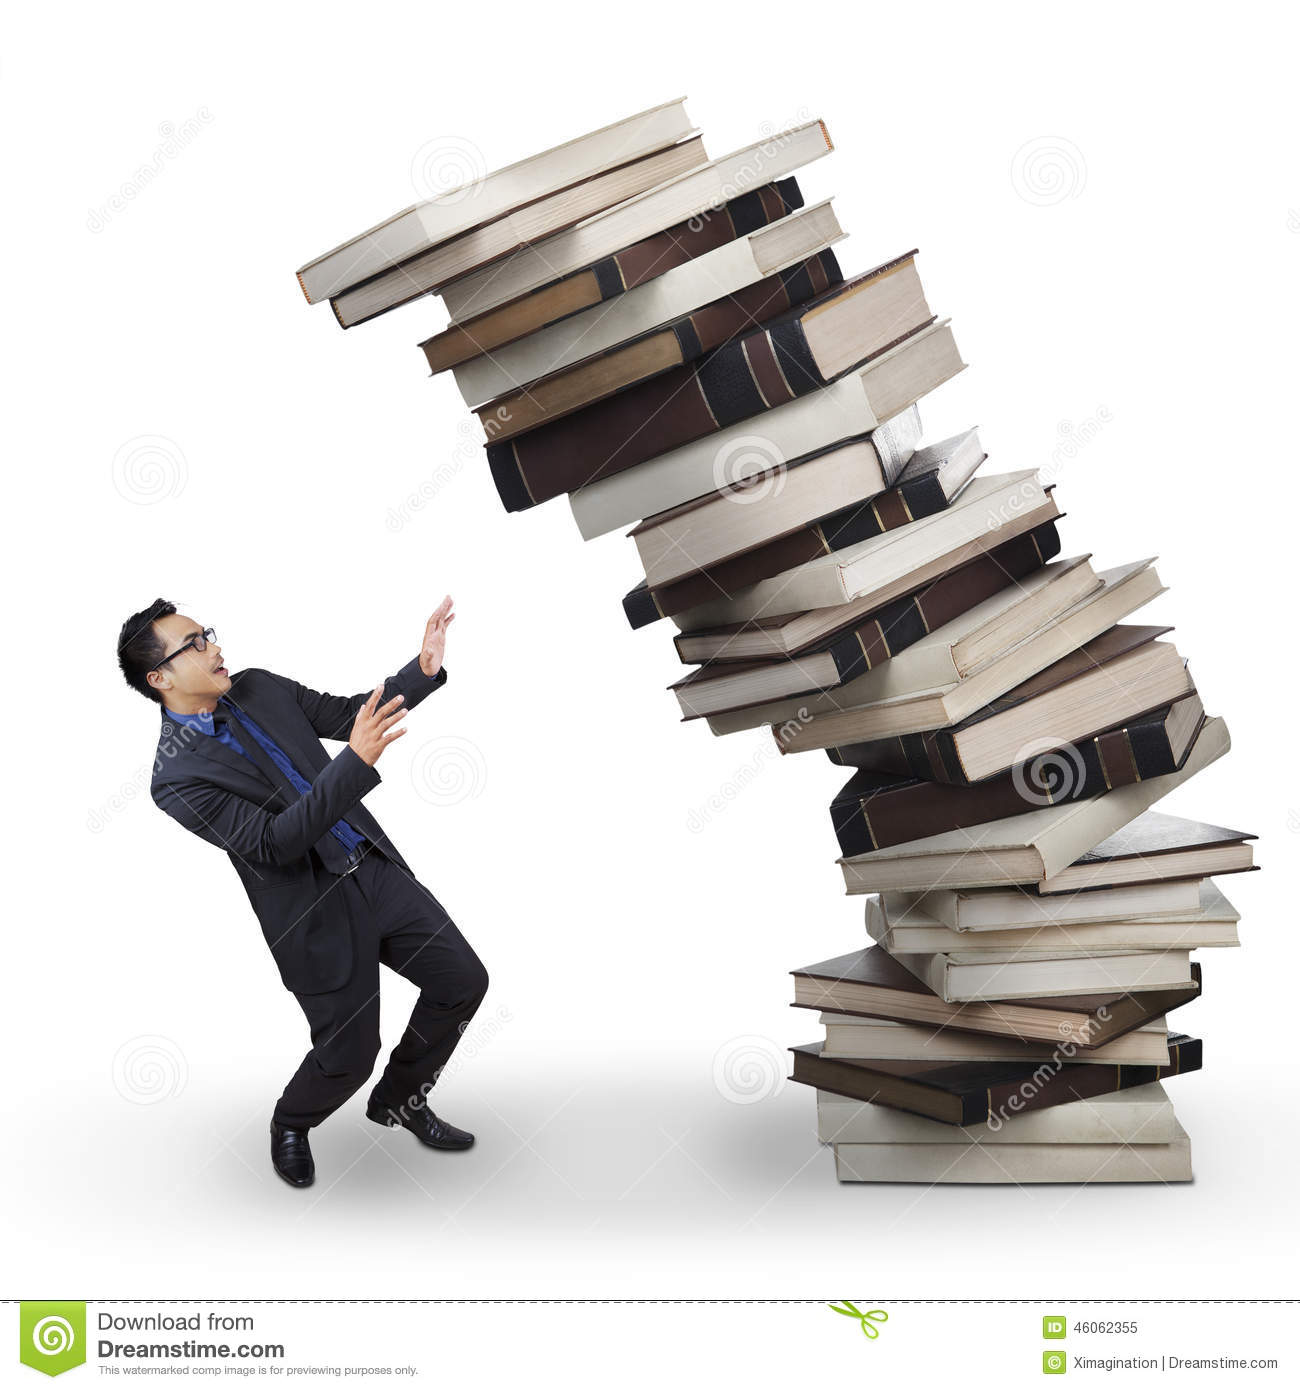 Image result for books falling on a person